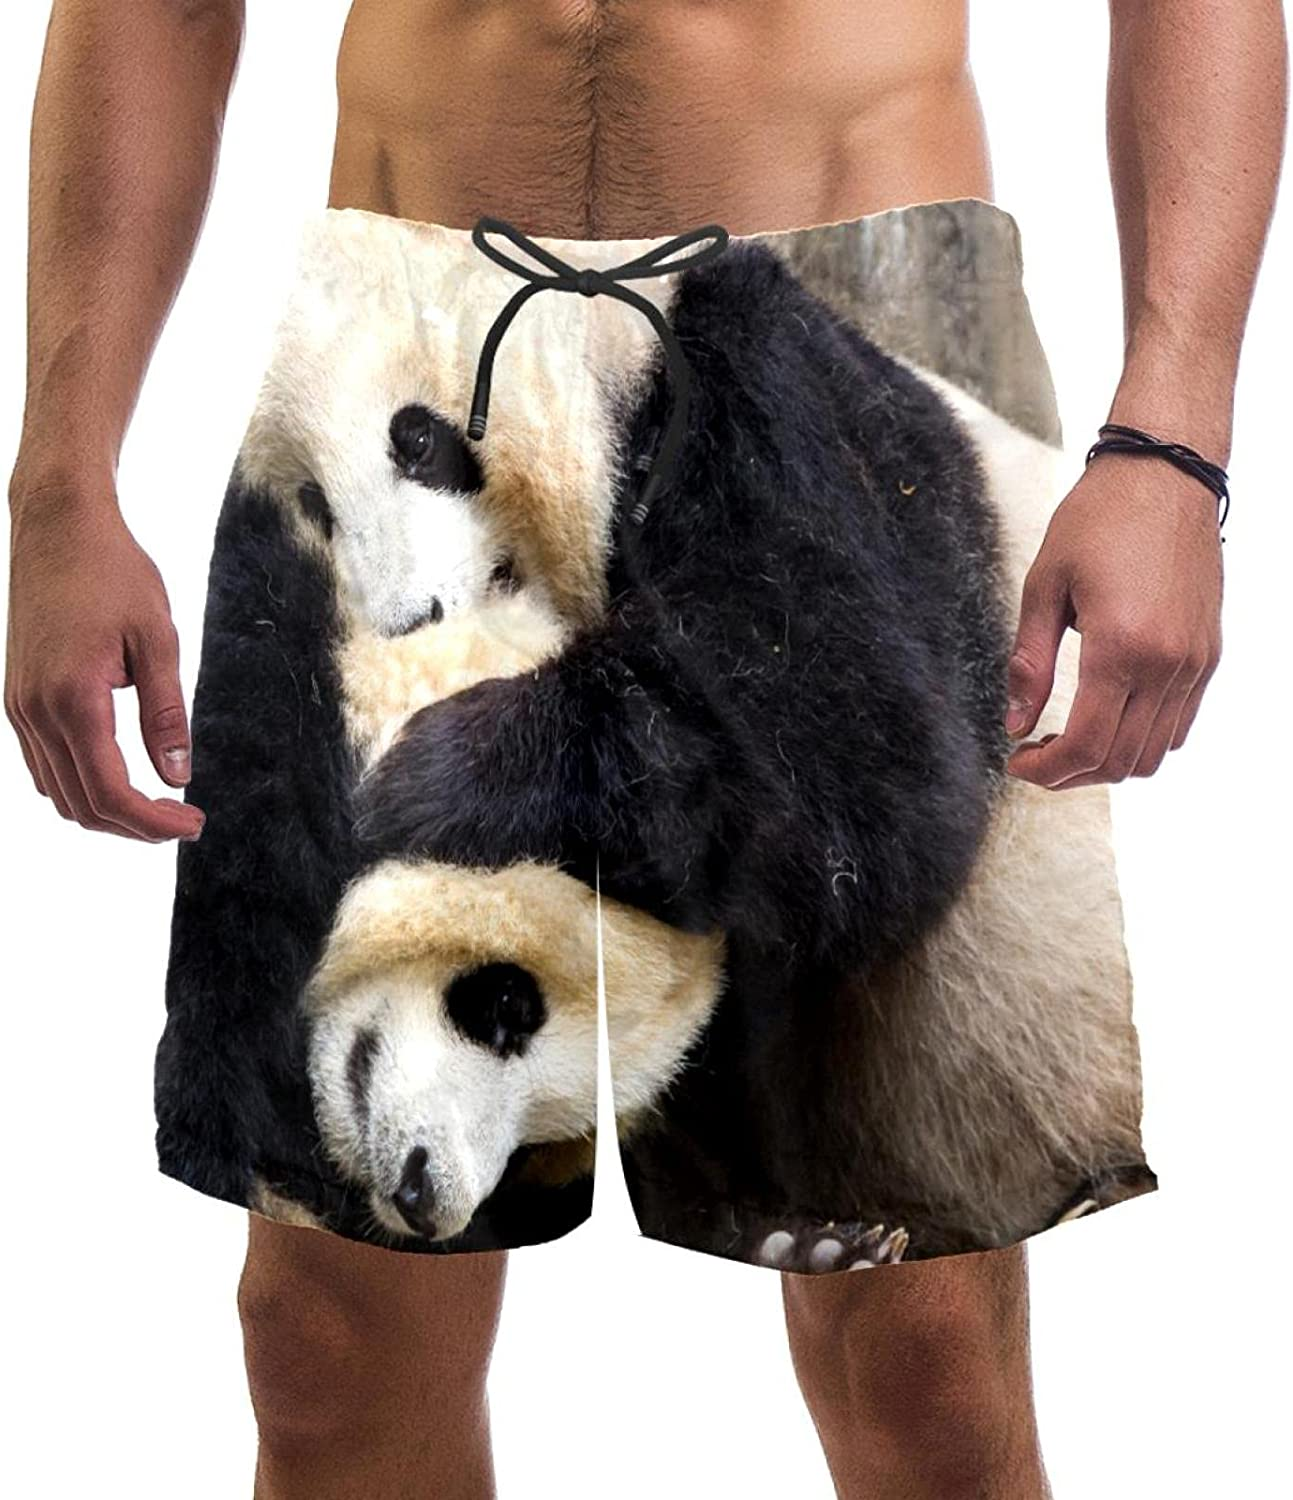 Panda Animal Men's Swimming Trunks Quick Dry Fashion Bathing Suit Beach Shorts with Pockets